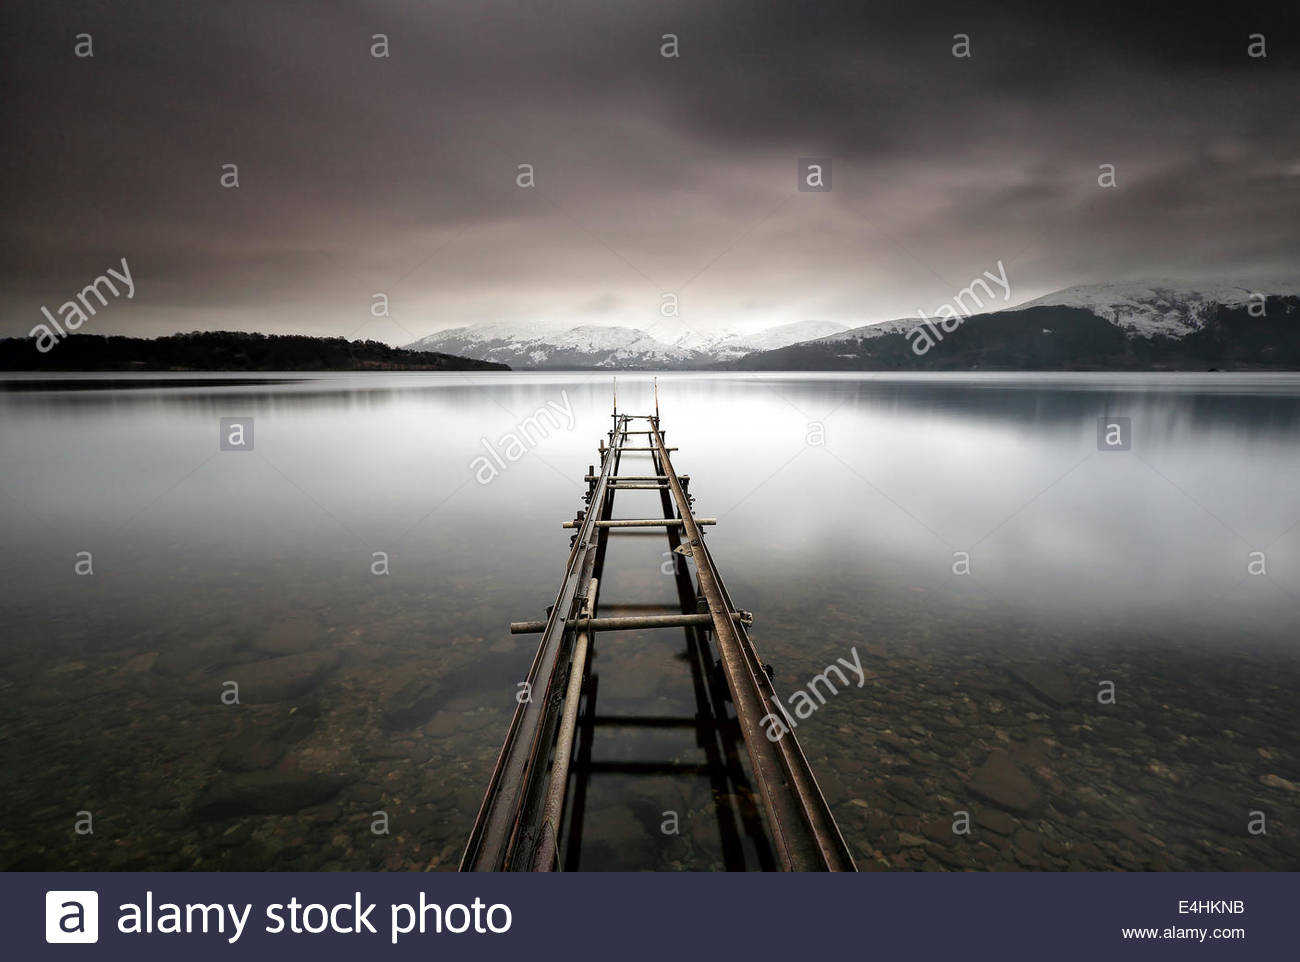 A long exposure of an abandoned jetty on the shores of Loch Lomond, Scotland - Stock Image